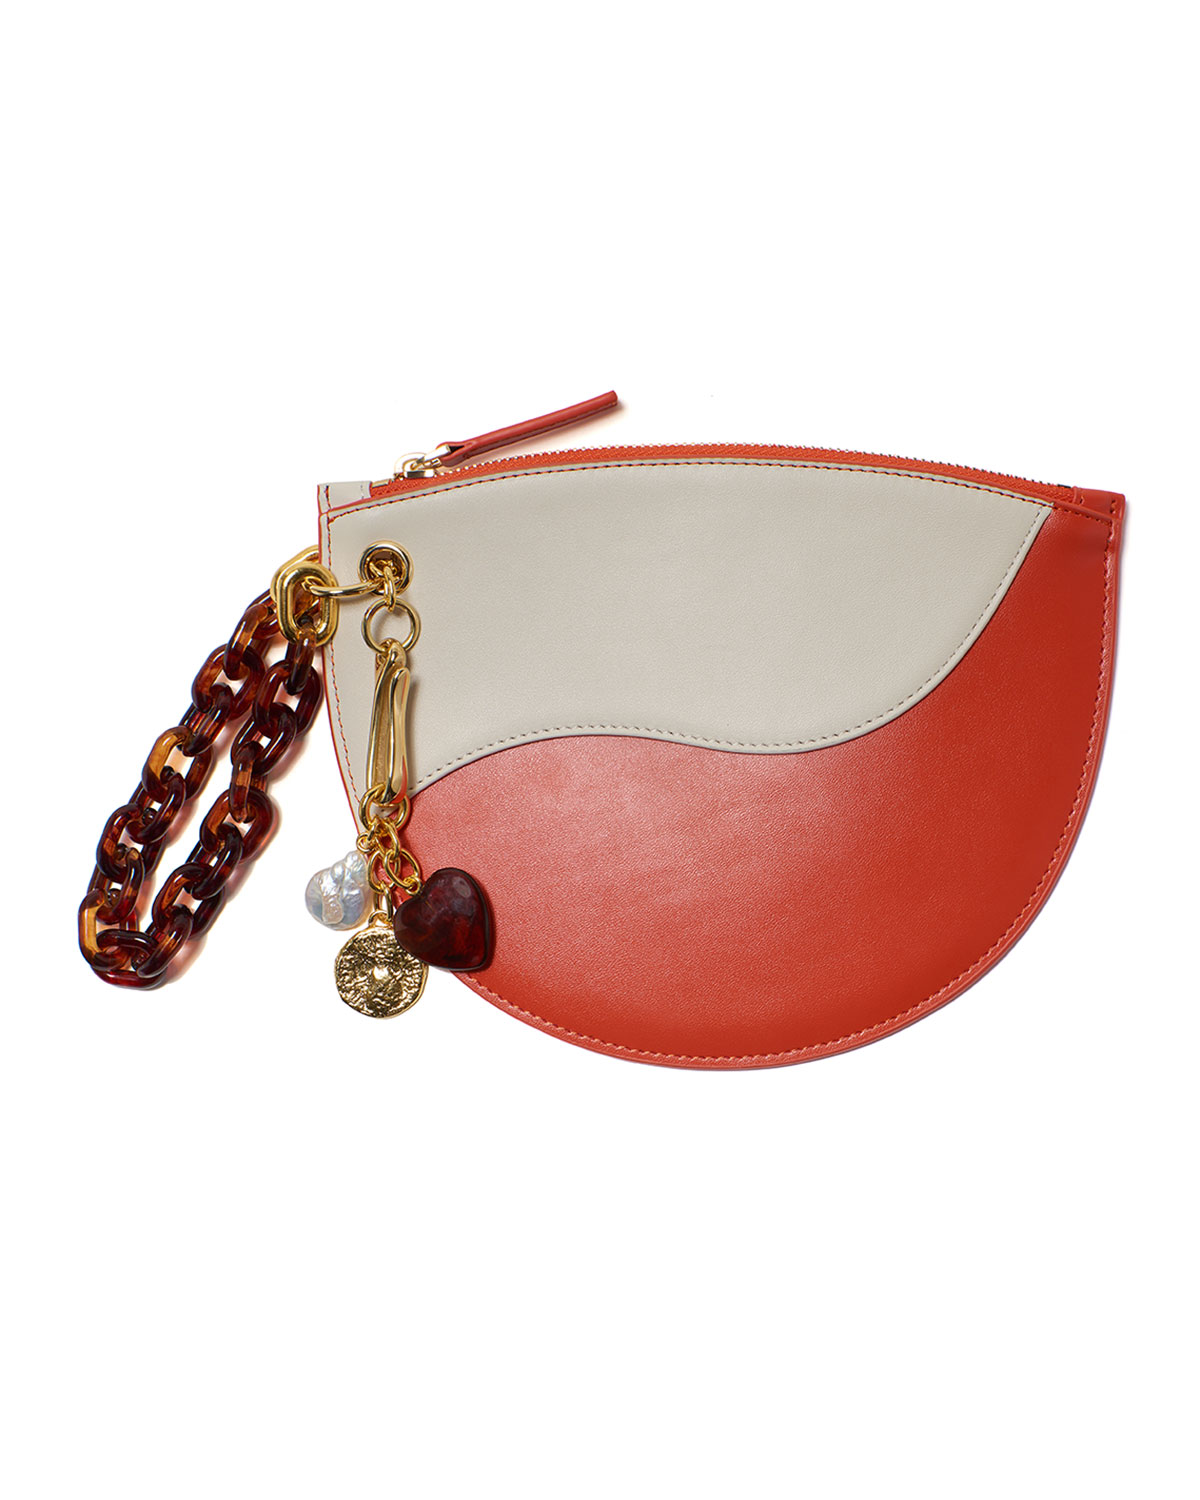 Small Crescent Leather Wristlet Clutch Bag